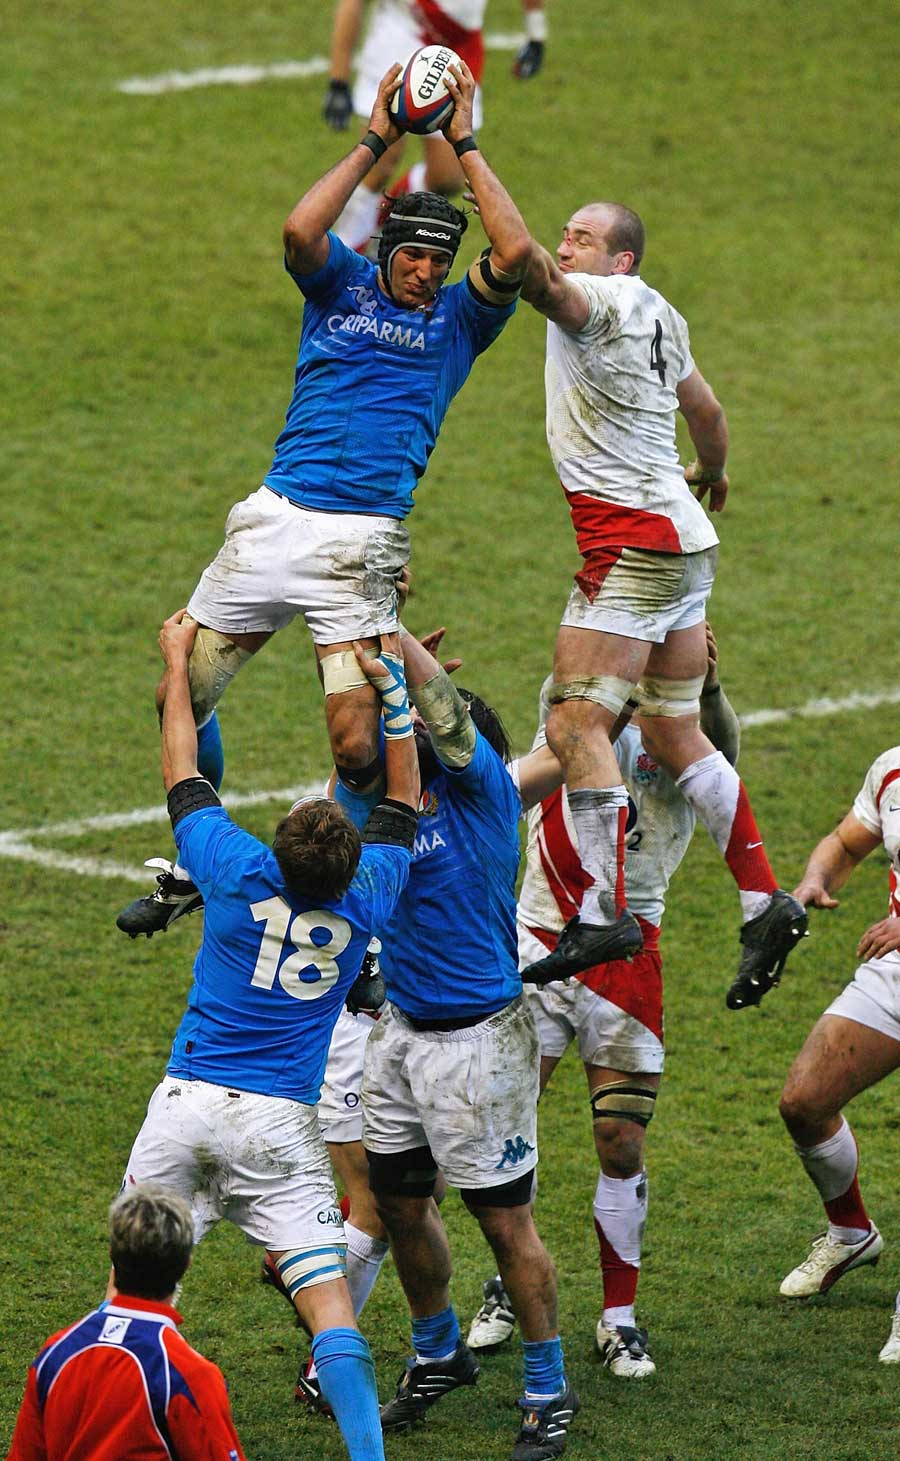 Italy's Santiago Dellape claims a lineout